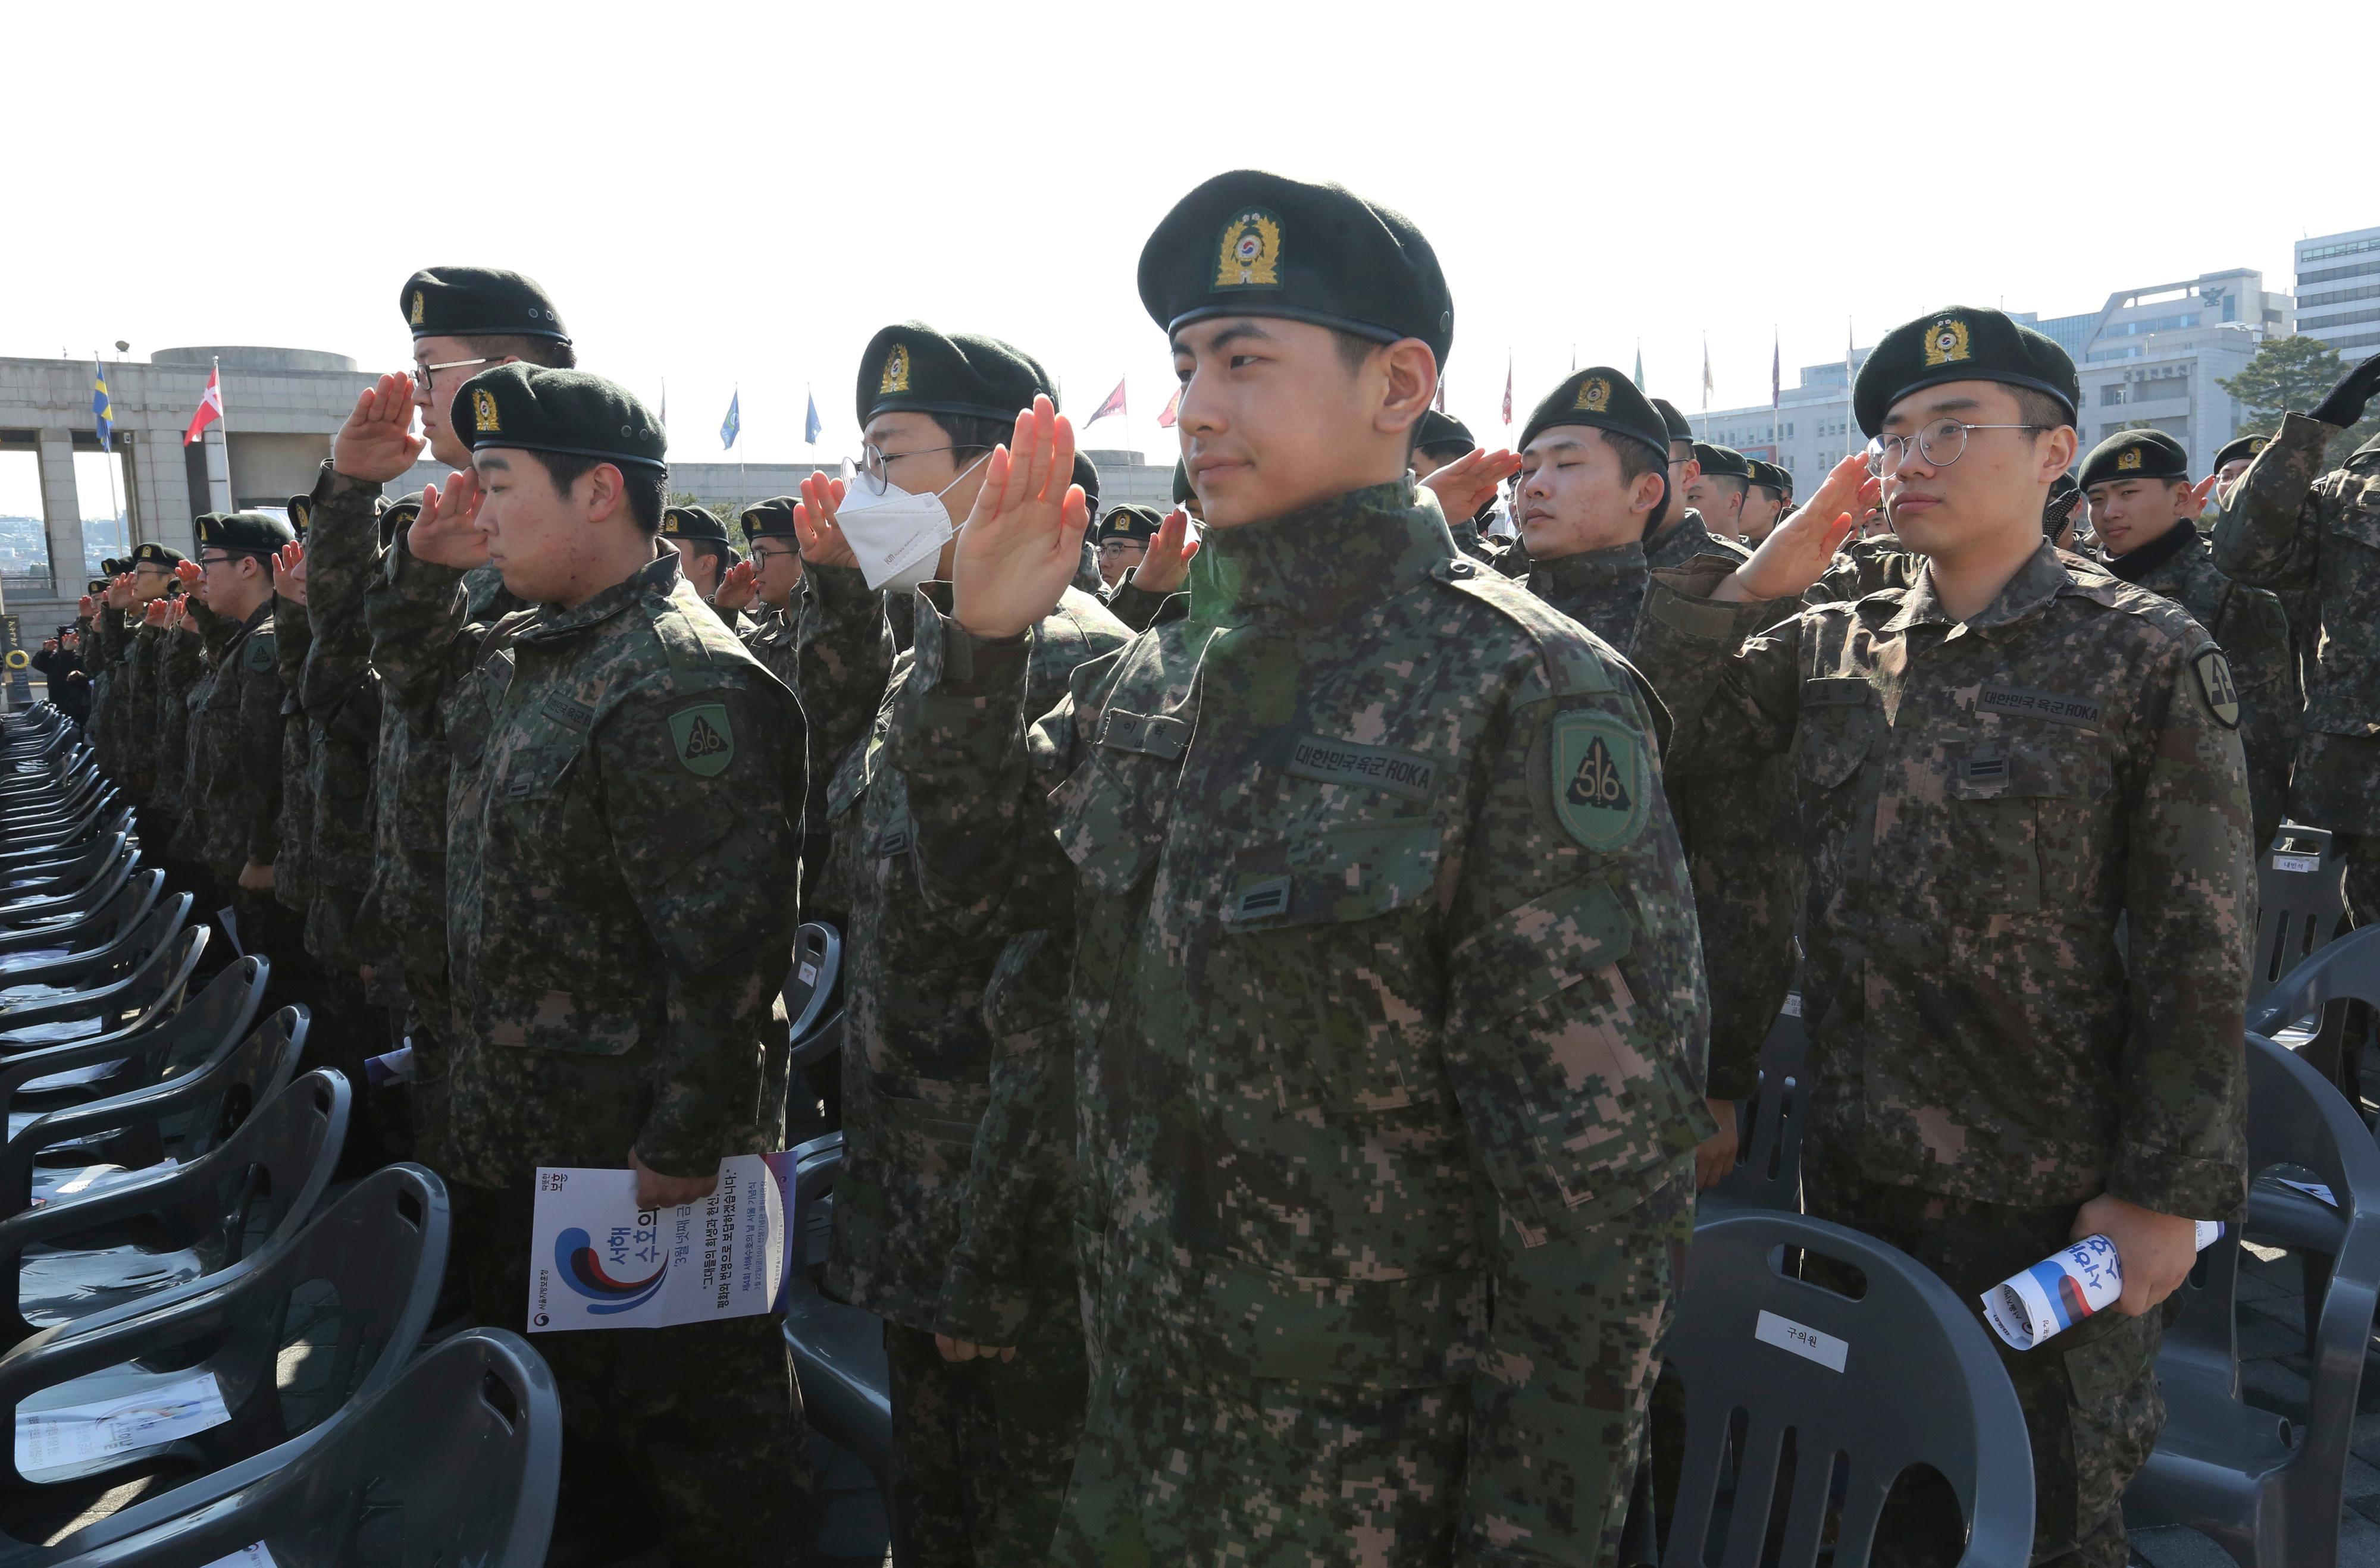 South Korean army soldiers salute during a ceremony to commemorate South Korean soldiers killed in three major clashes with North Korea in the West Sea, in Seoul, South Korea, Friday, March 22, 2019.{ } (AP Photo/Ahn Young-joon)